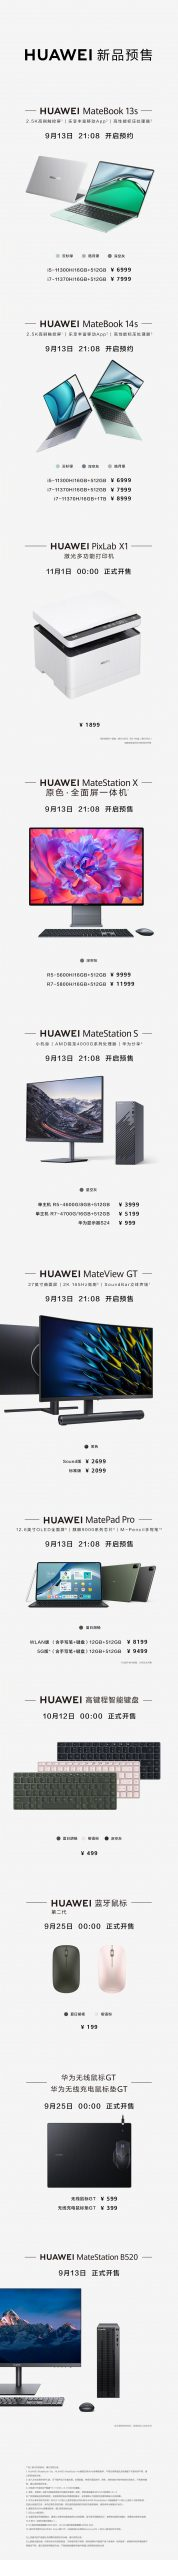 Huawei new products